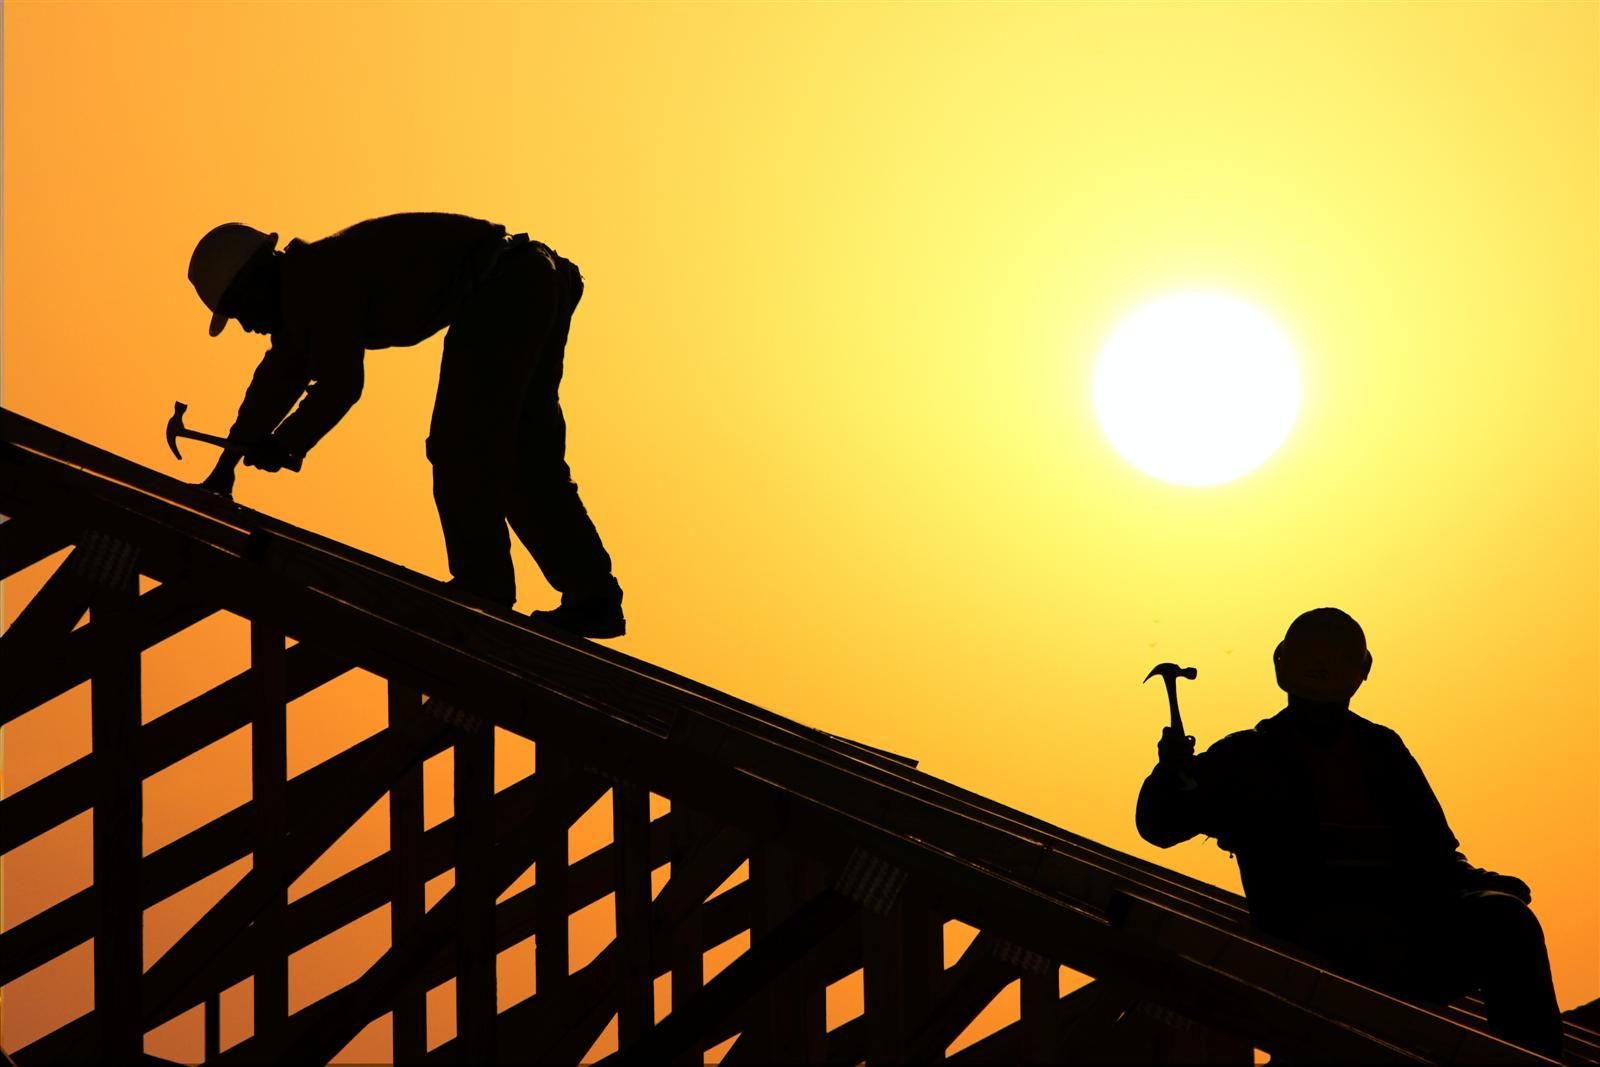 image of two roofers on top of roof with sun setting